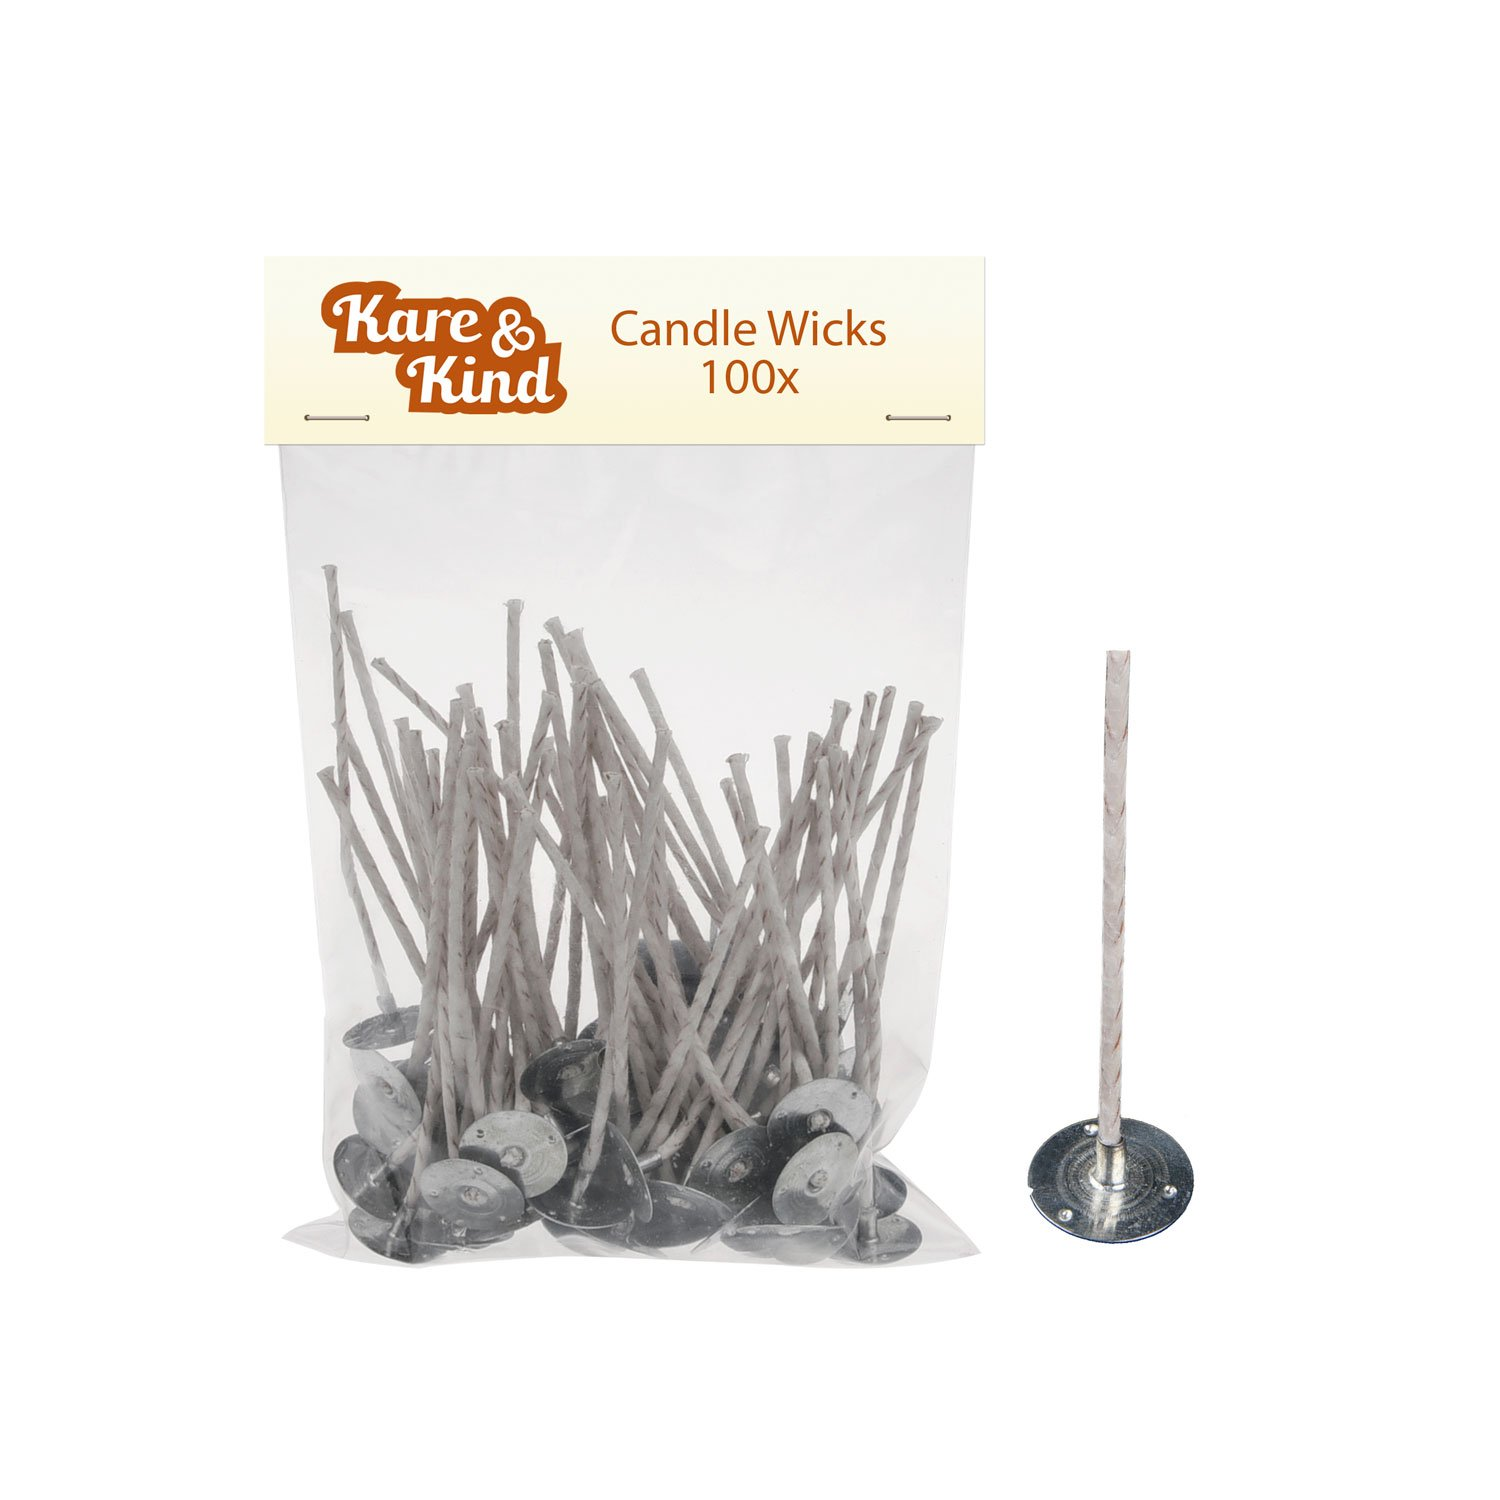 Candle Wicks for Candle Making - 100 Pieces - Coated With Natural Soy Wax, Low Smoke - Cotton Threads Woven with Paper - Contains No Lead, Zinc or Other Metals - Ready to Use Kare & Kind